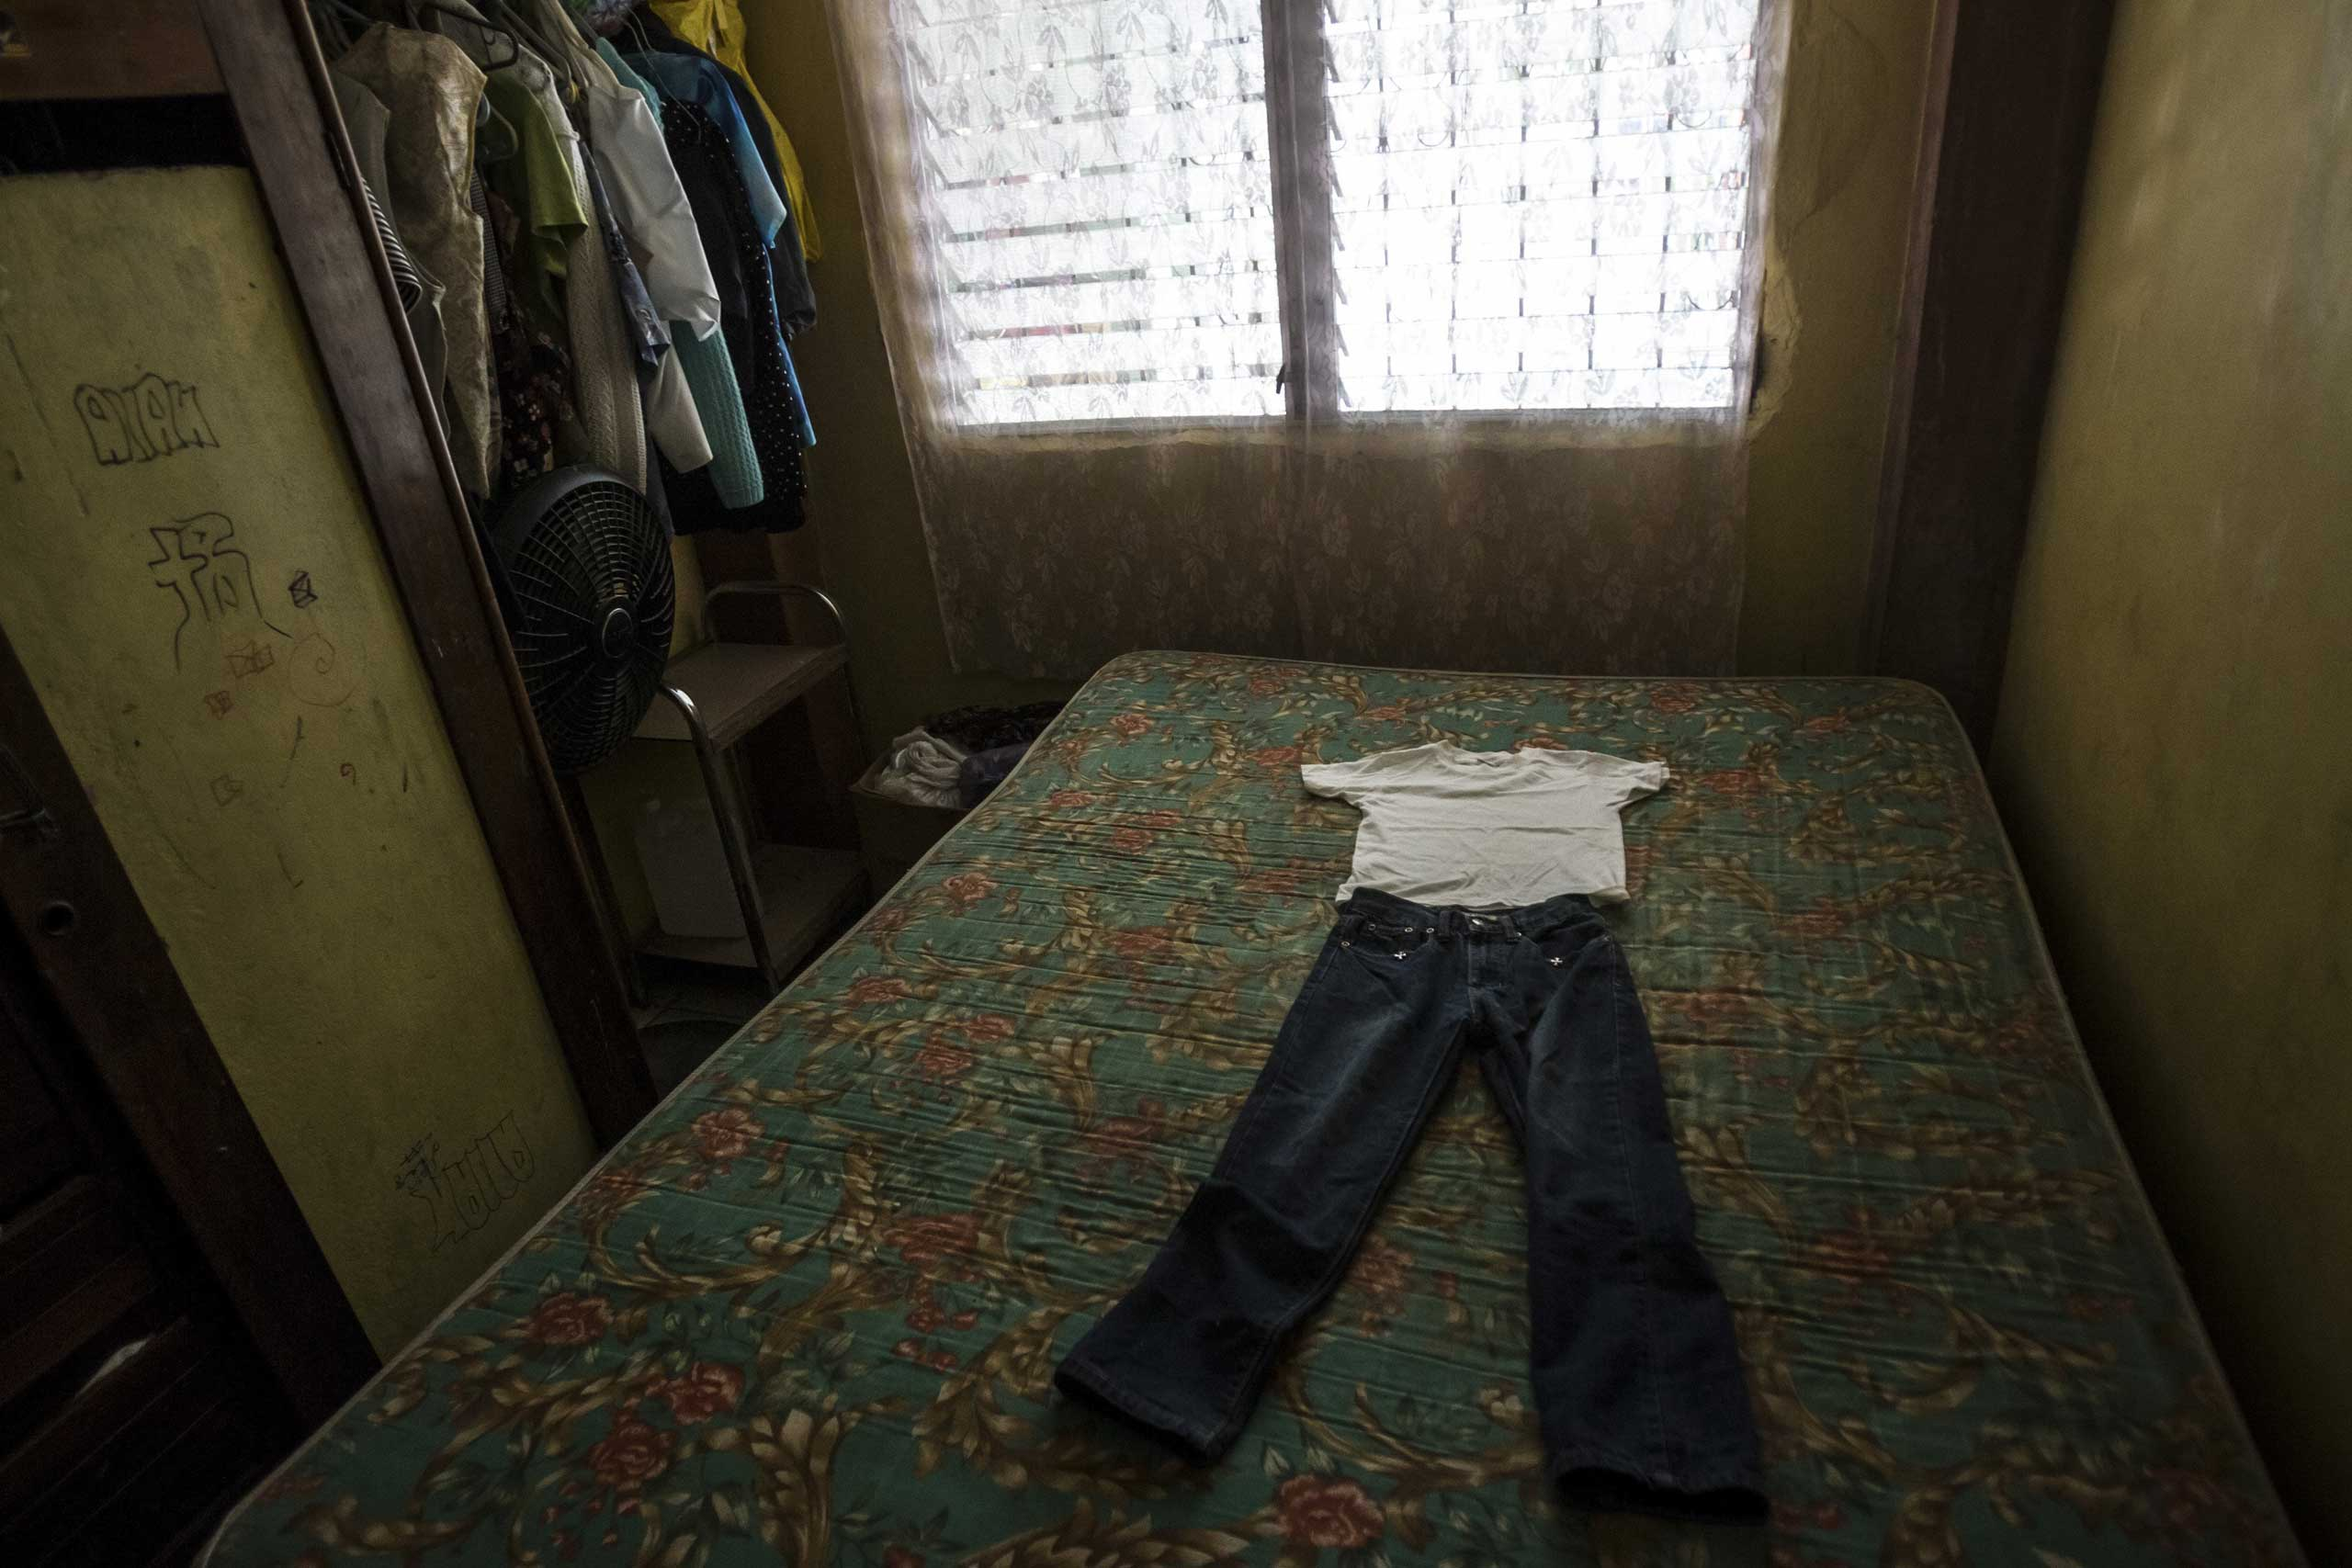 Clothes laid out on a bed for seven-year-old Kenneth Castellanos, whom police say was tortured to death by gang members in San Pedro Sula, Honduras, May 23, 2014.